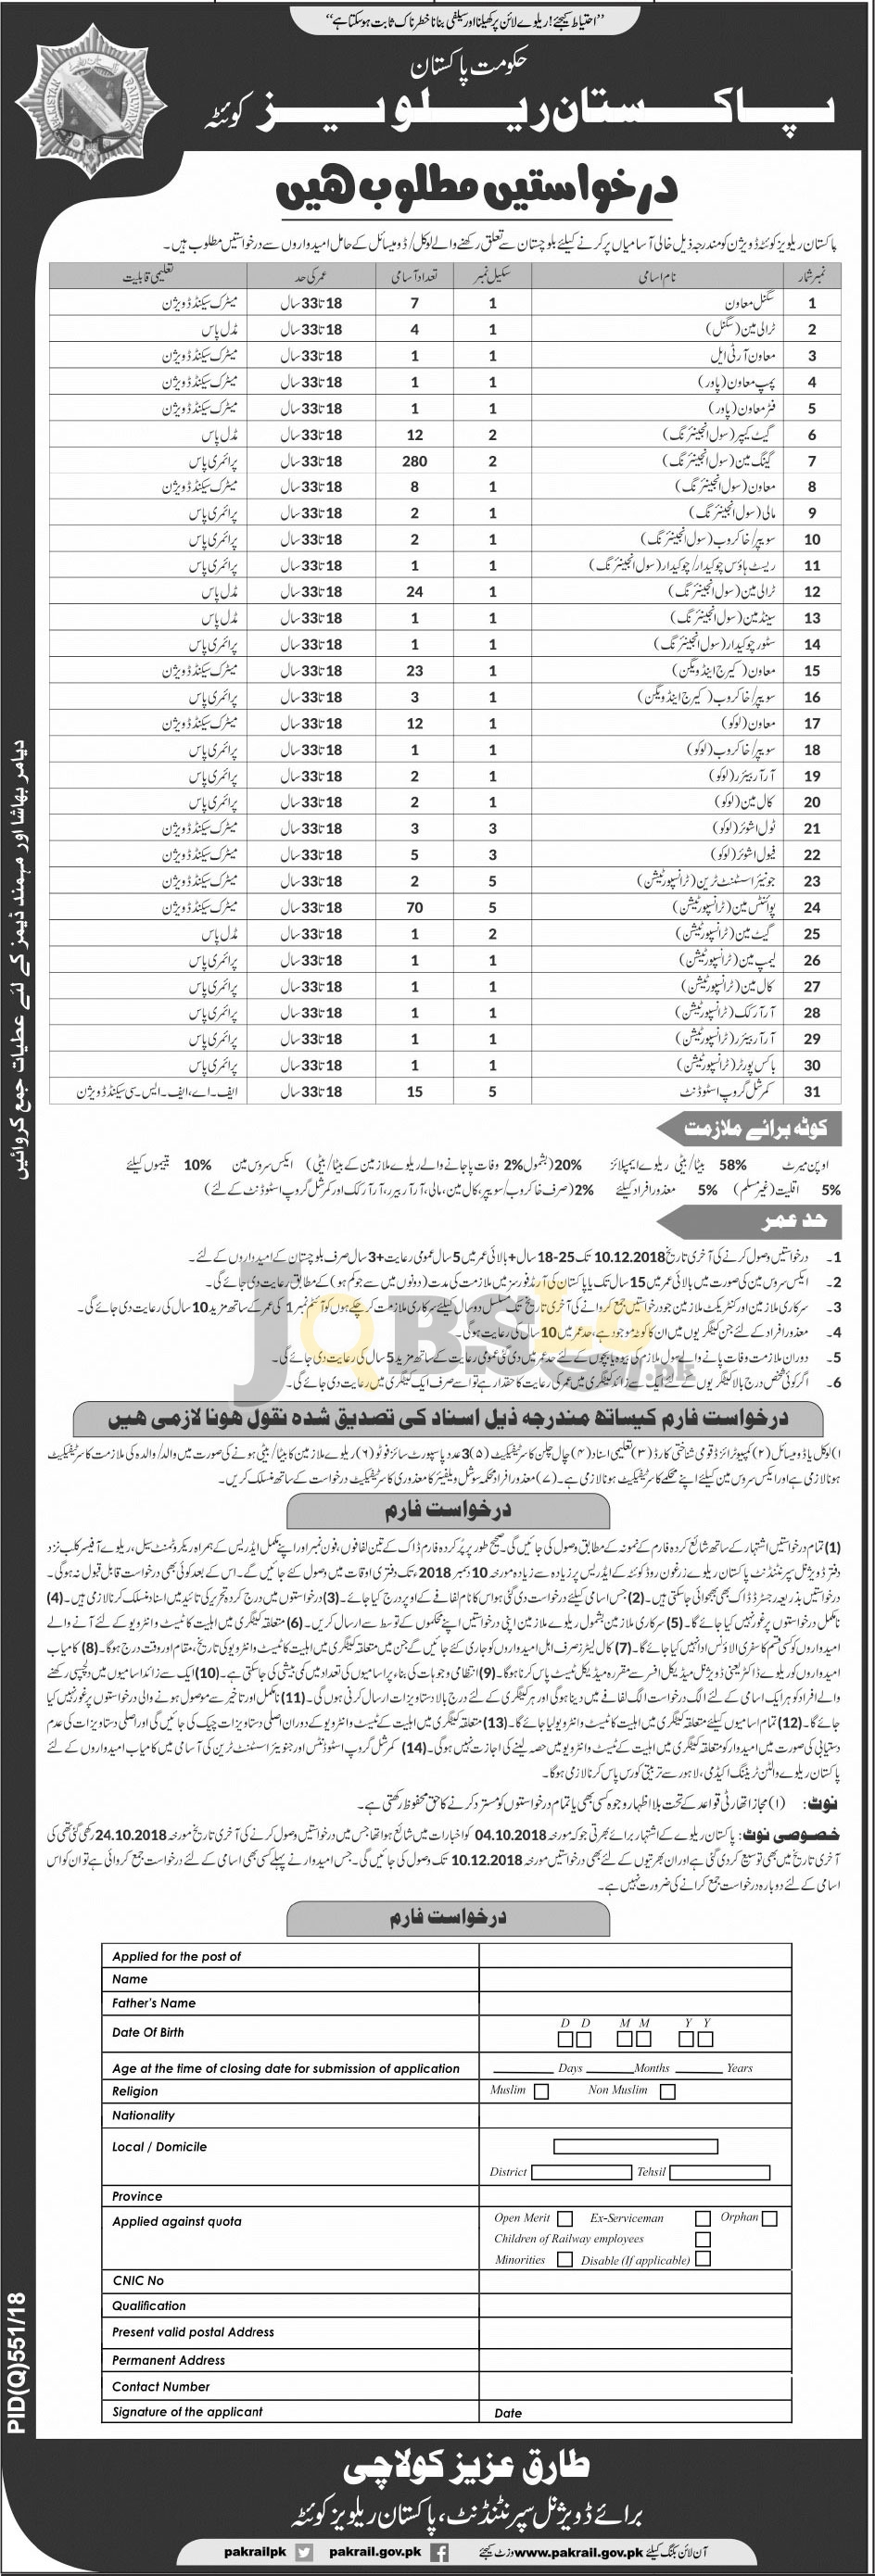 Pakistan Railway Jobs 2018 Quetta Division Application Form Last date